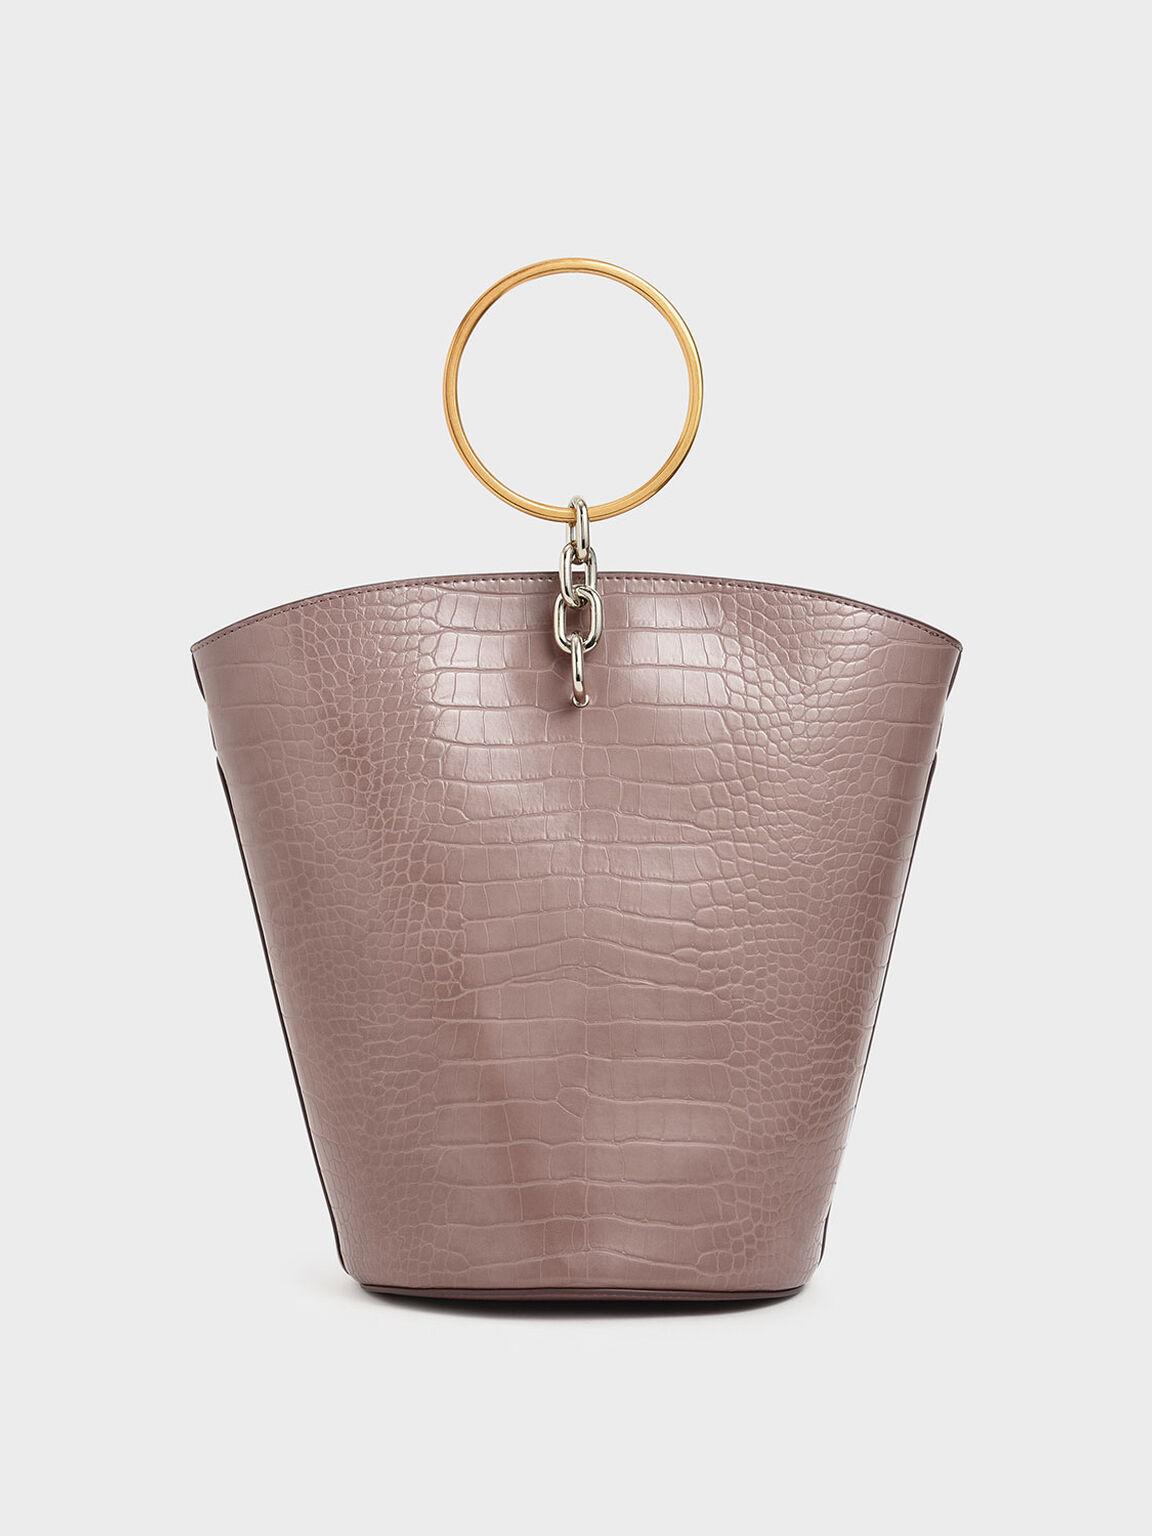 Croc-Effect Large Bracelet Bucket Bag, Mauve, hi-res